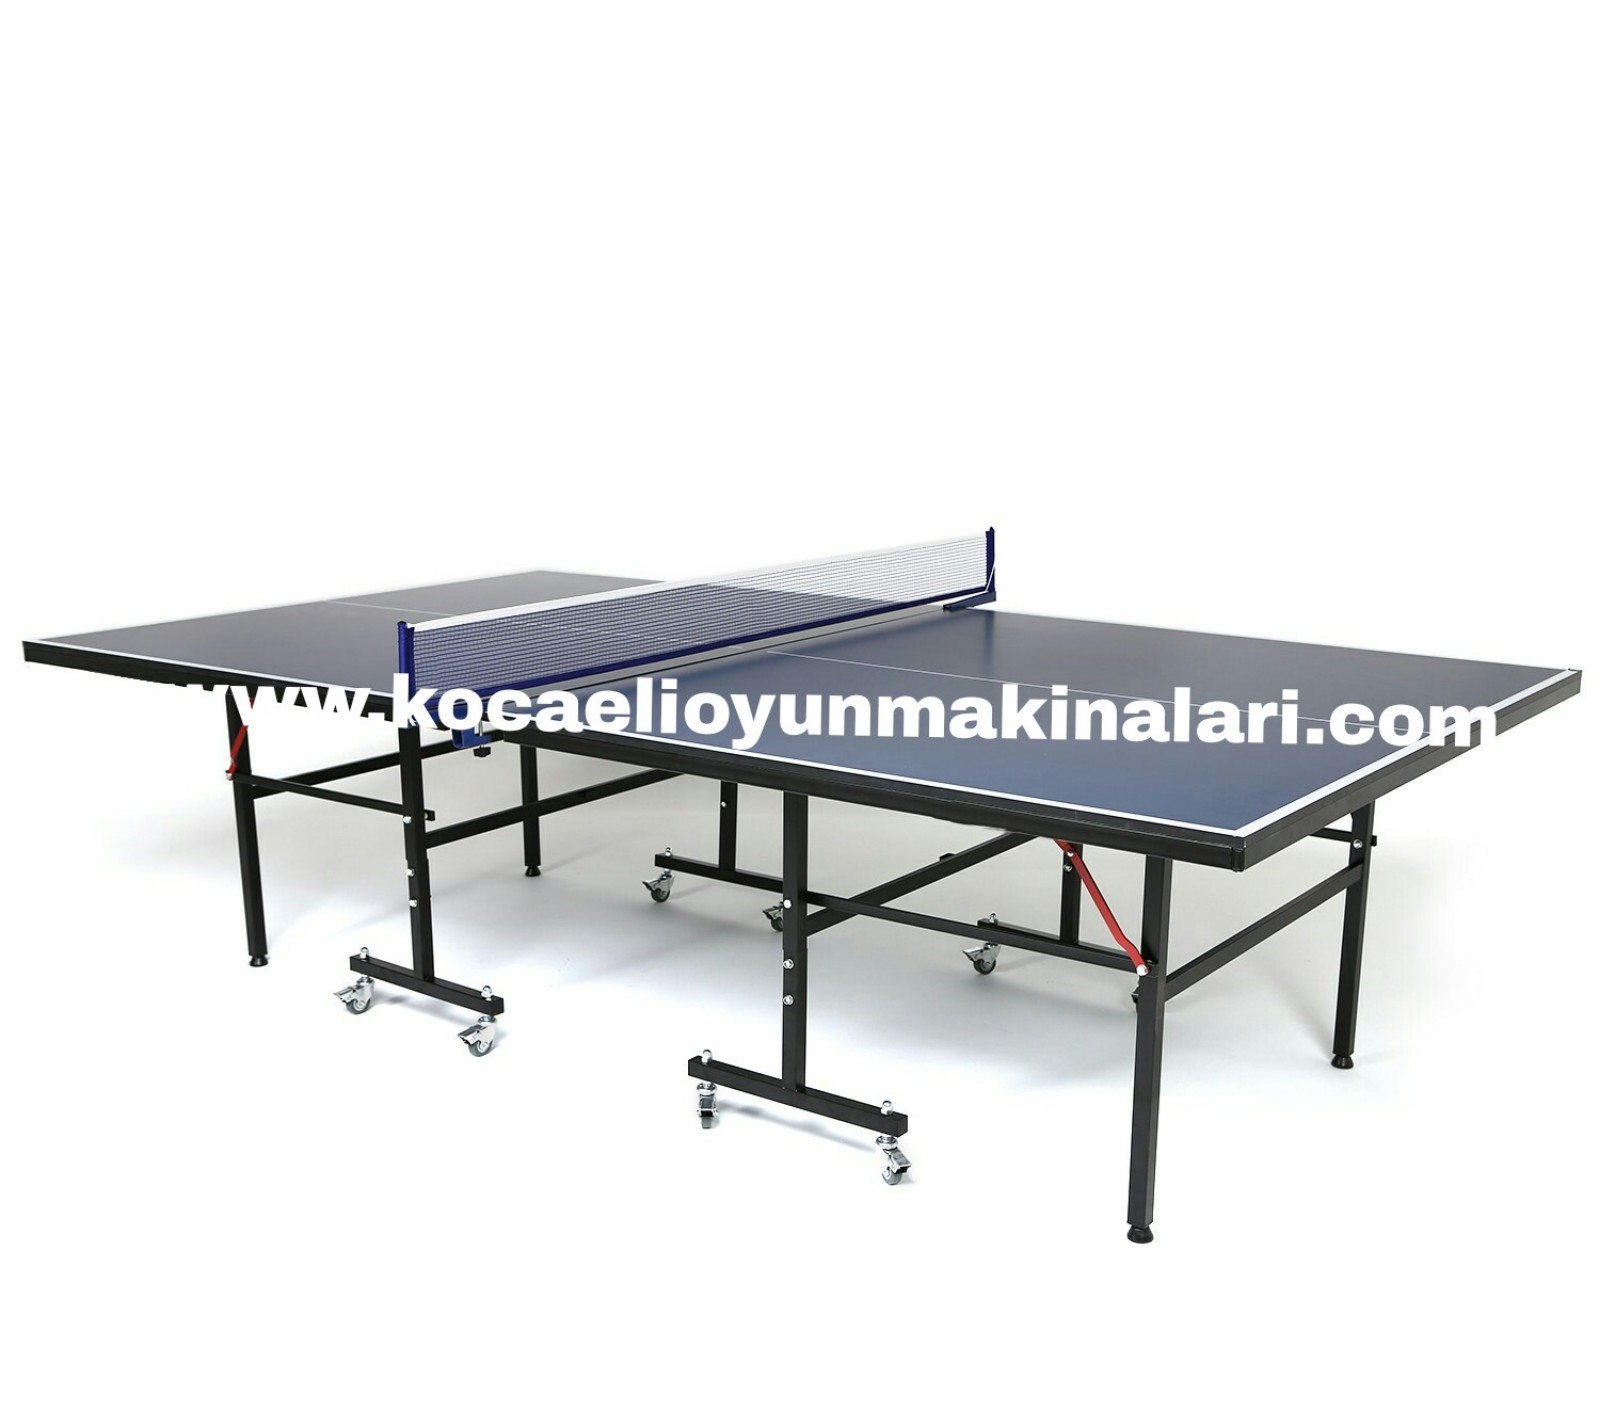 Masa tenisi pinpon masası table tennis